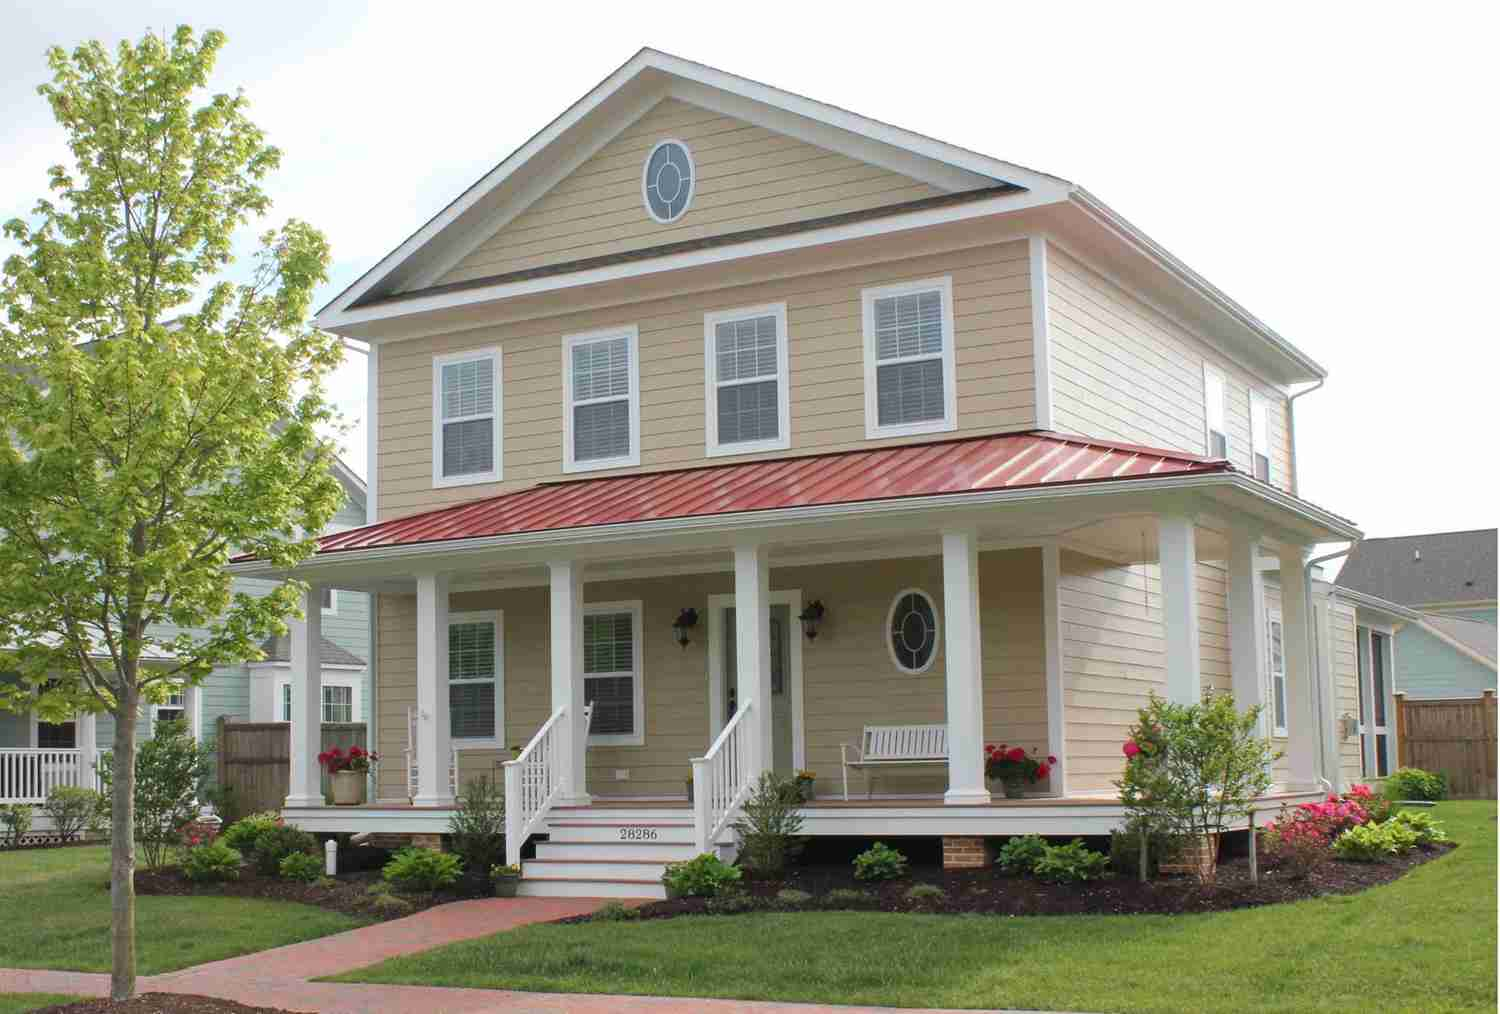 Galveston Legacy with Railess Wraparound Porch and Turn Gable Roof